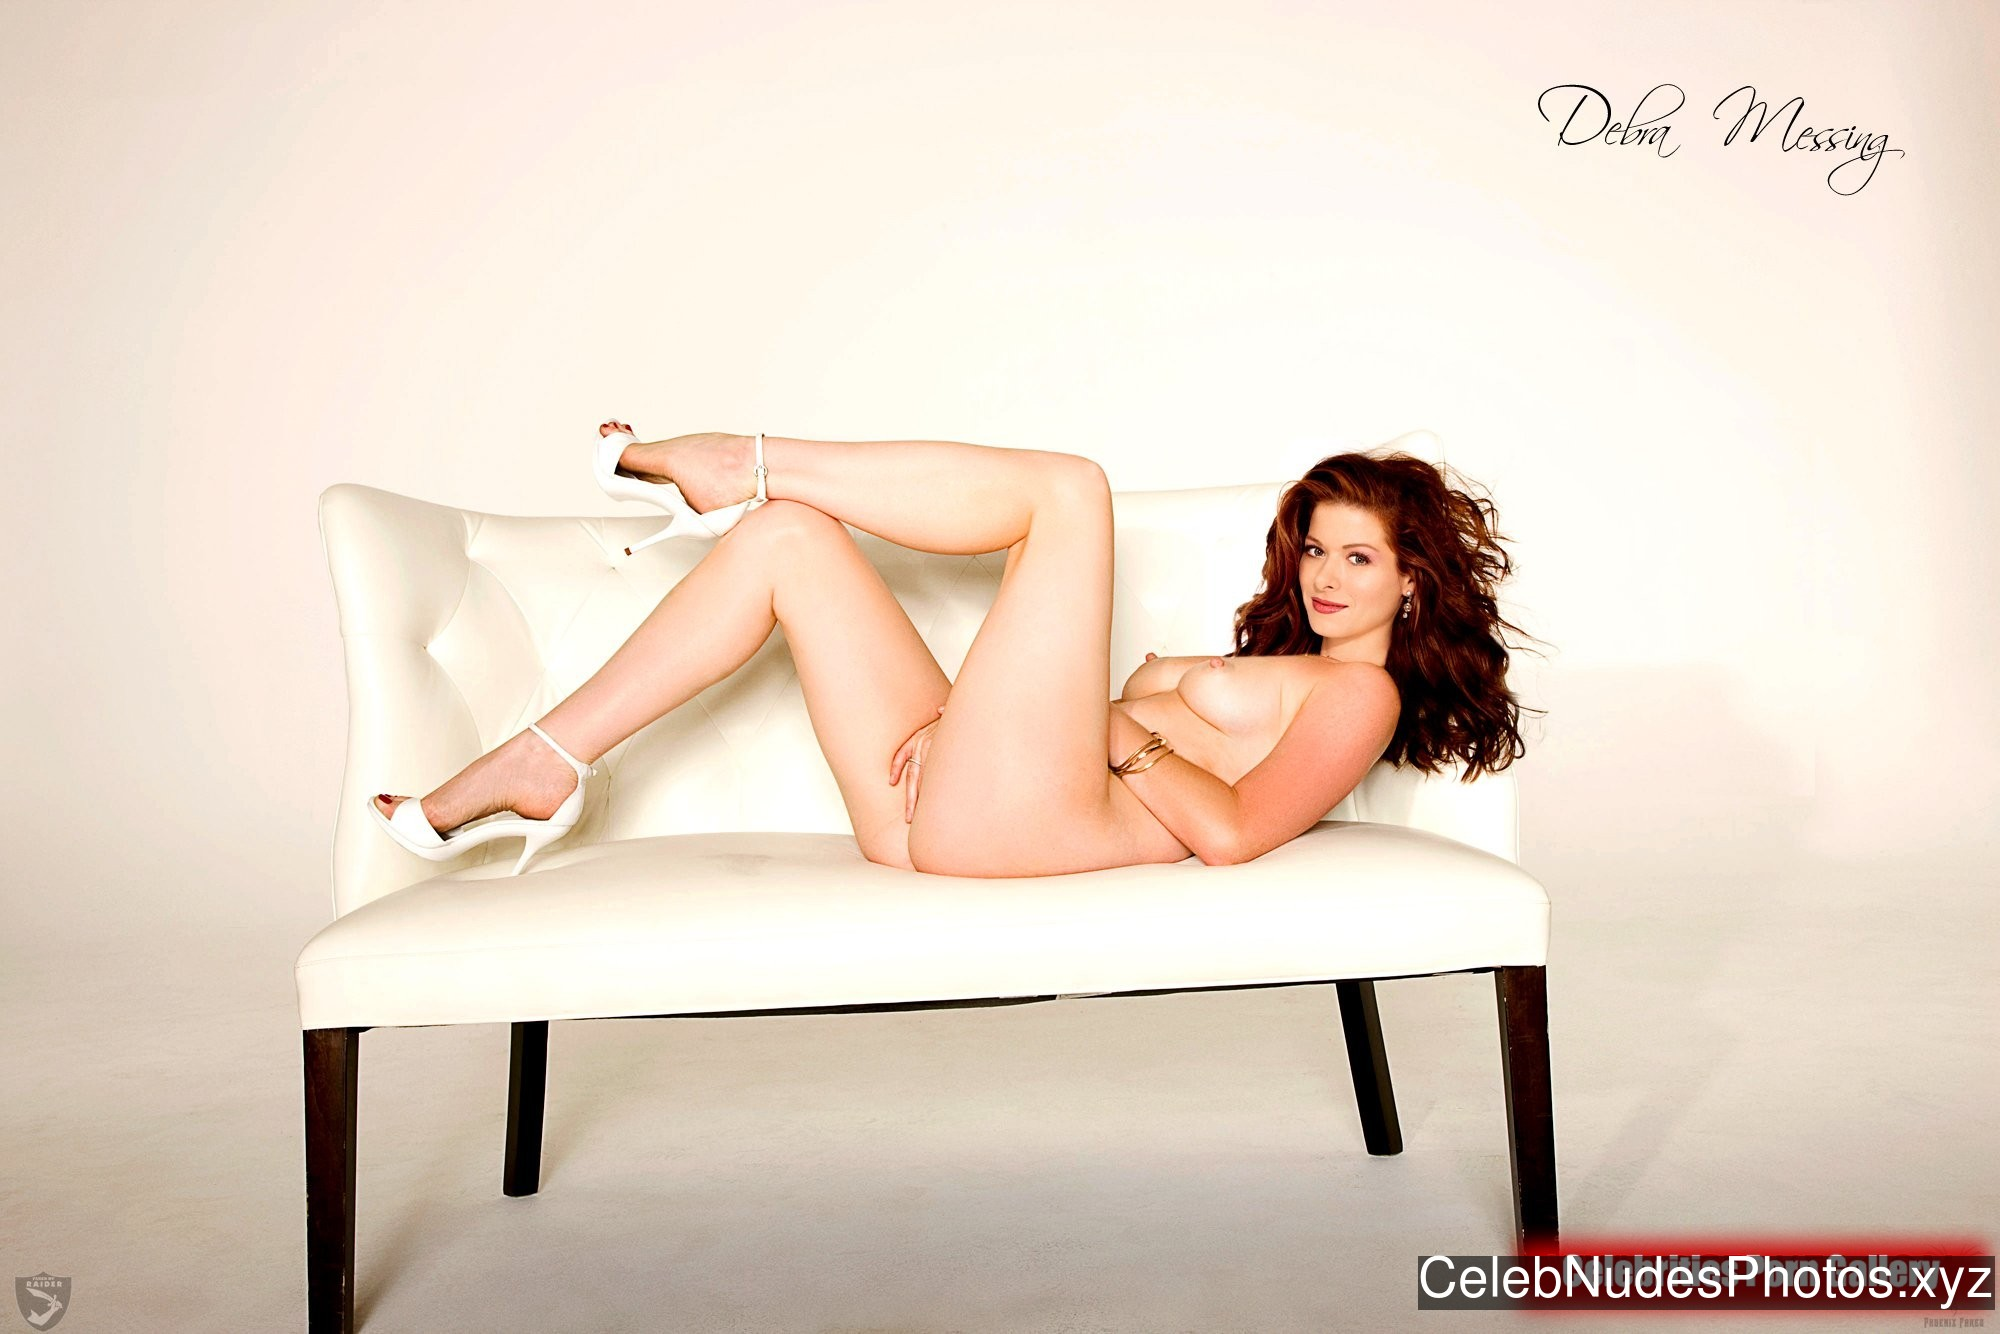 Debra messing nude images remarkable